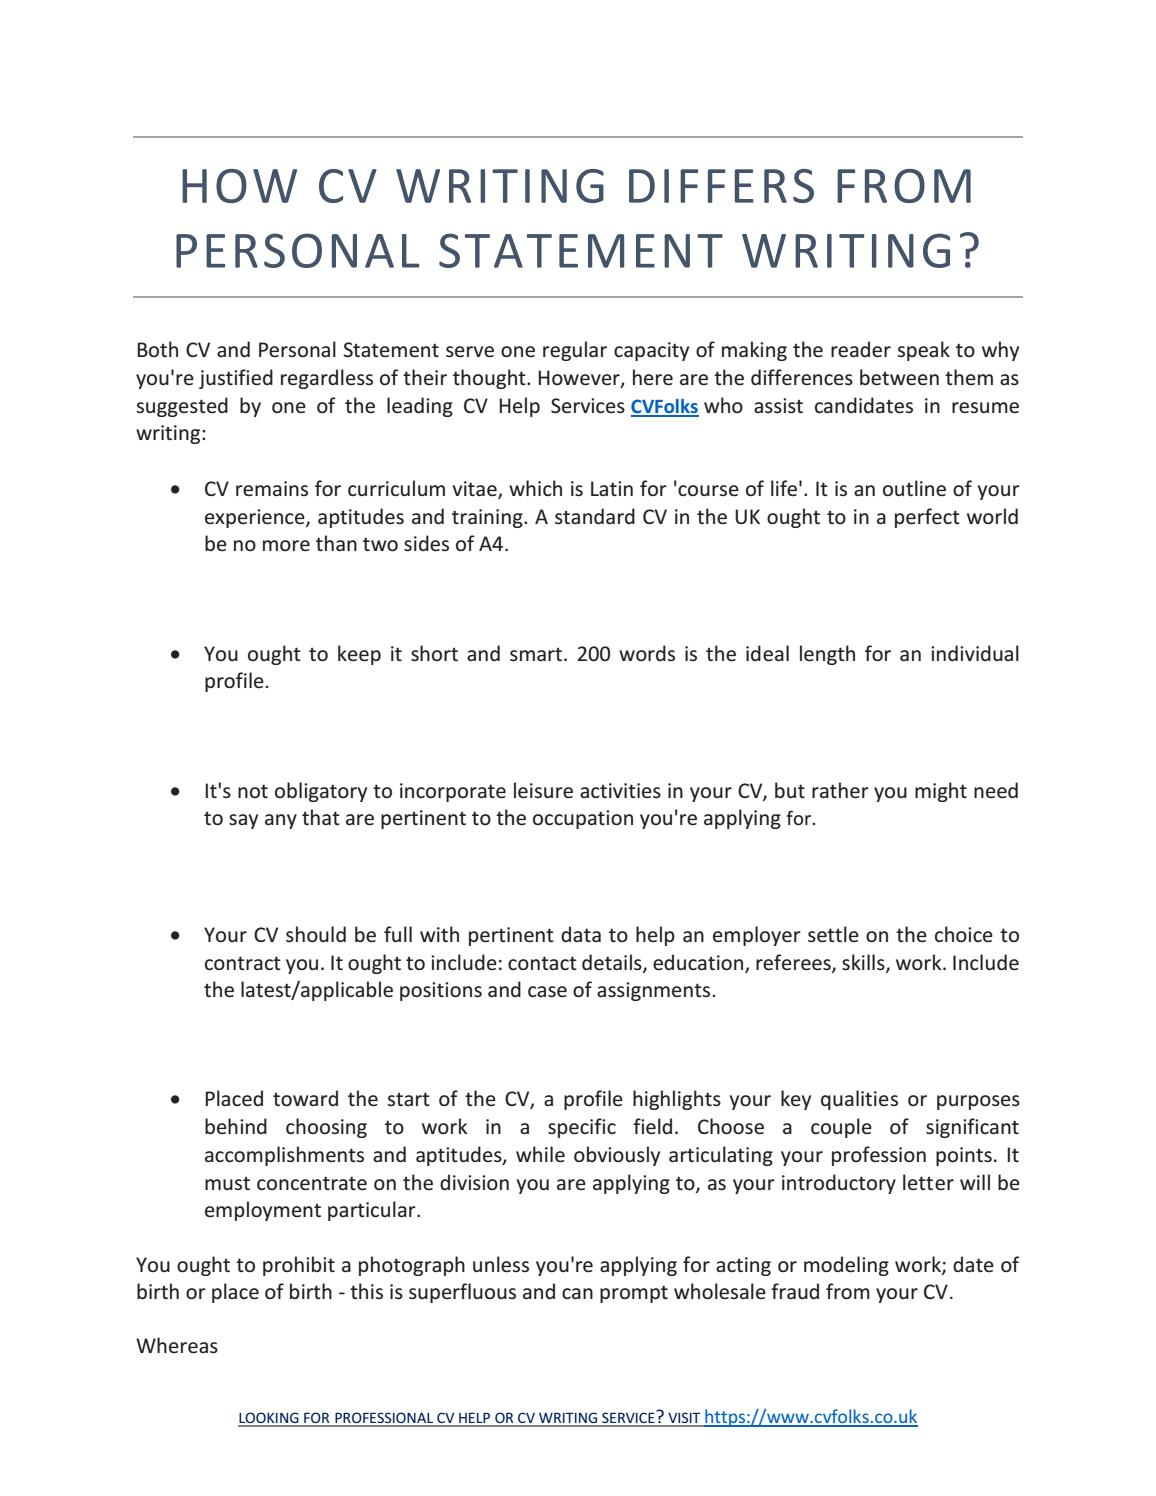 personal statement cv anglais